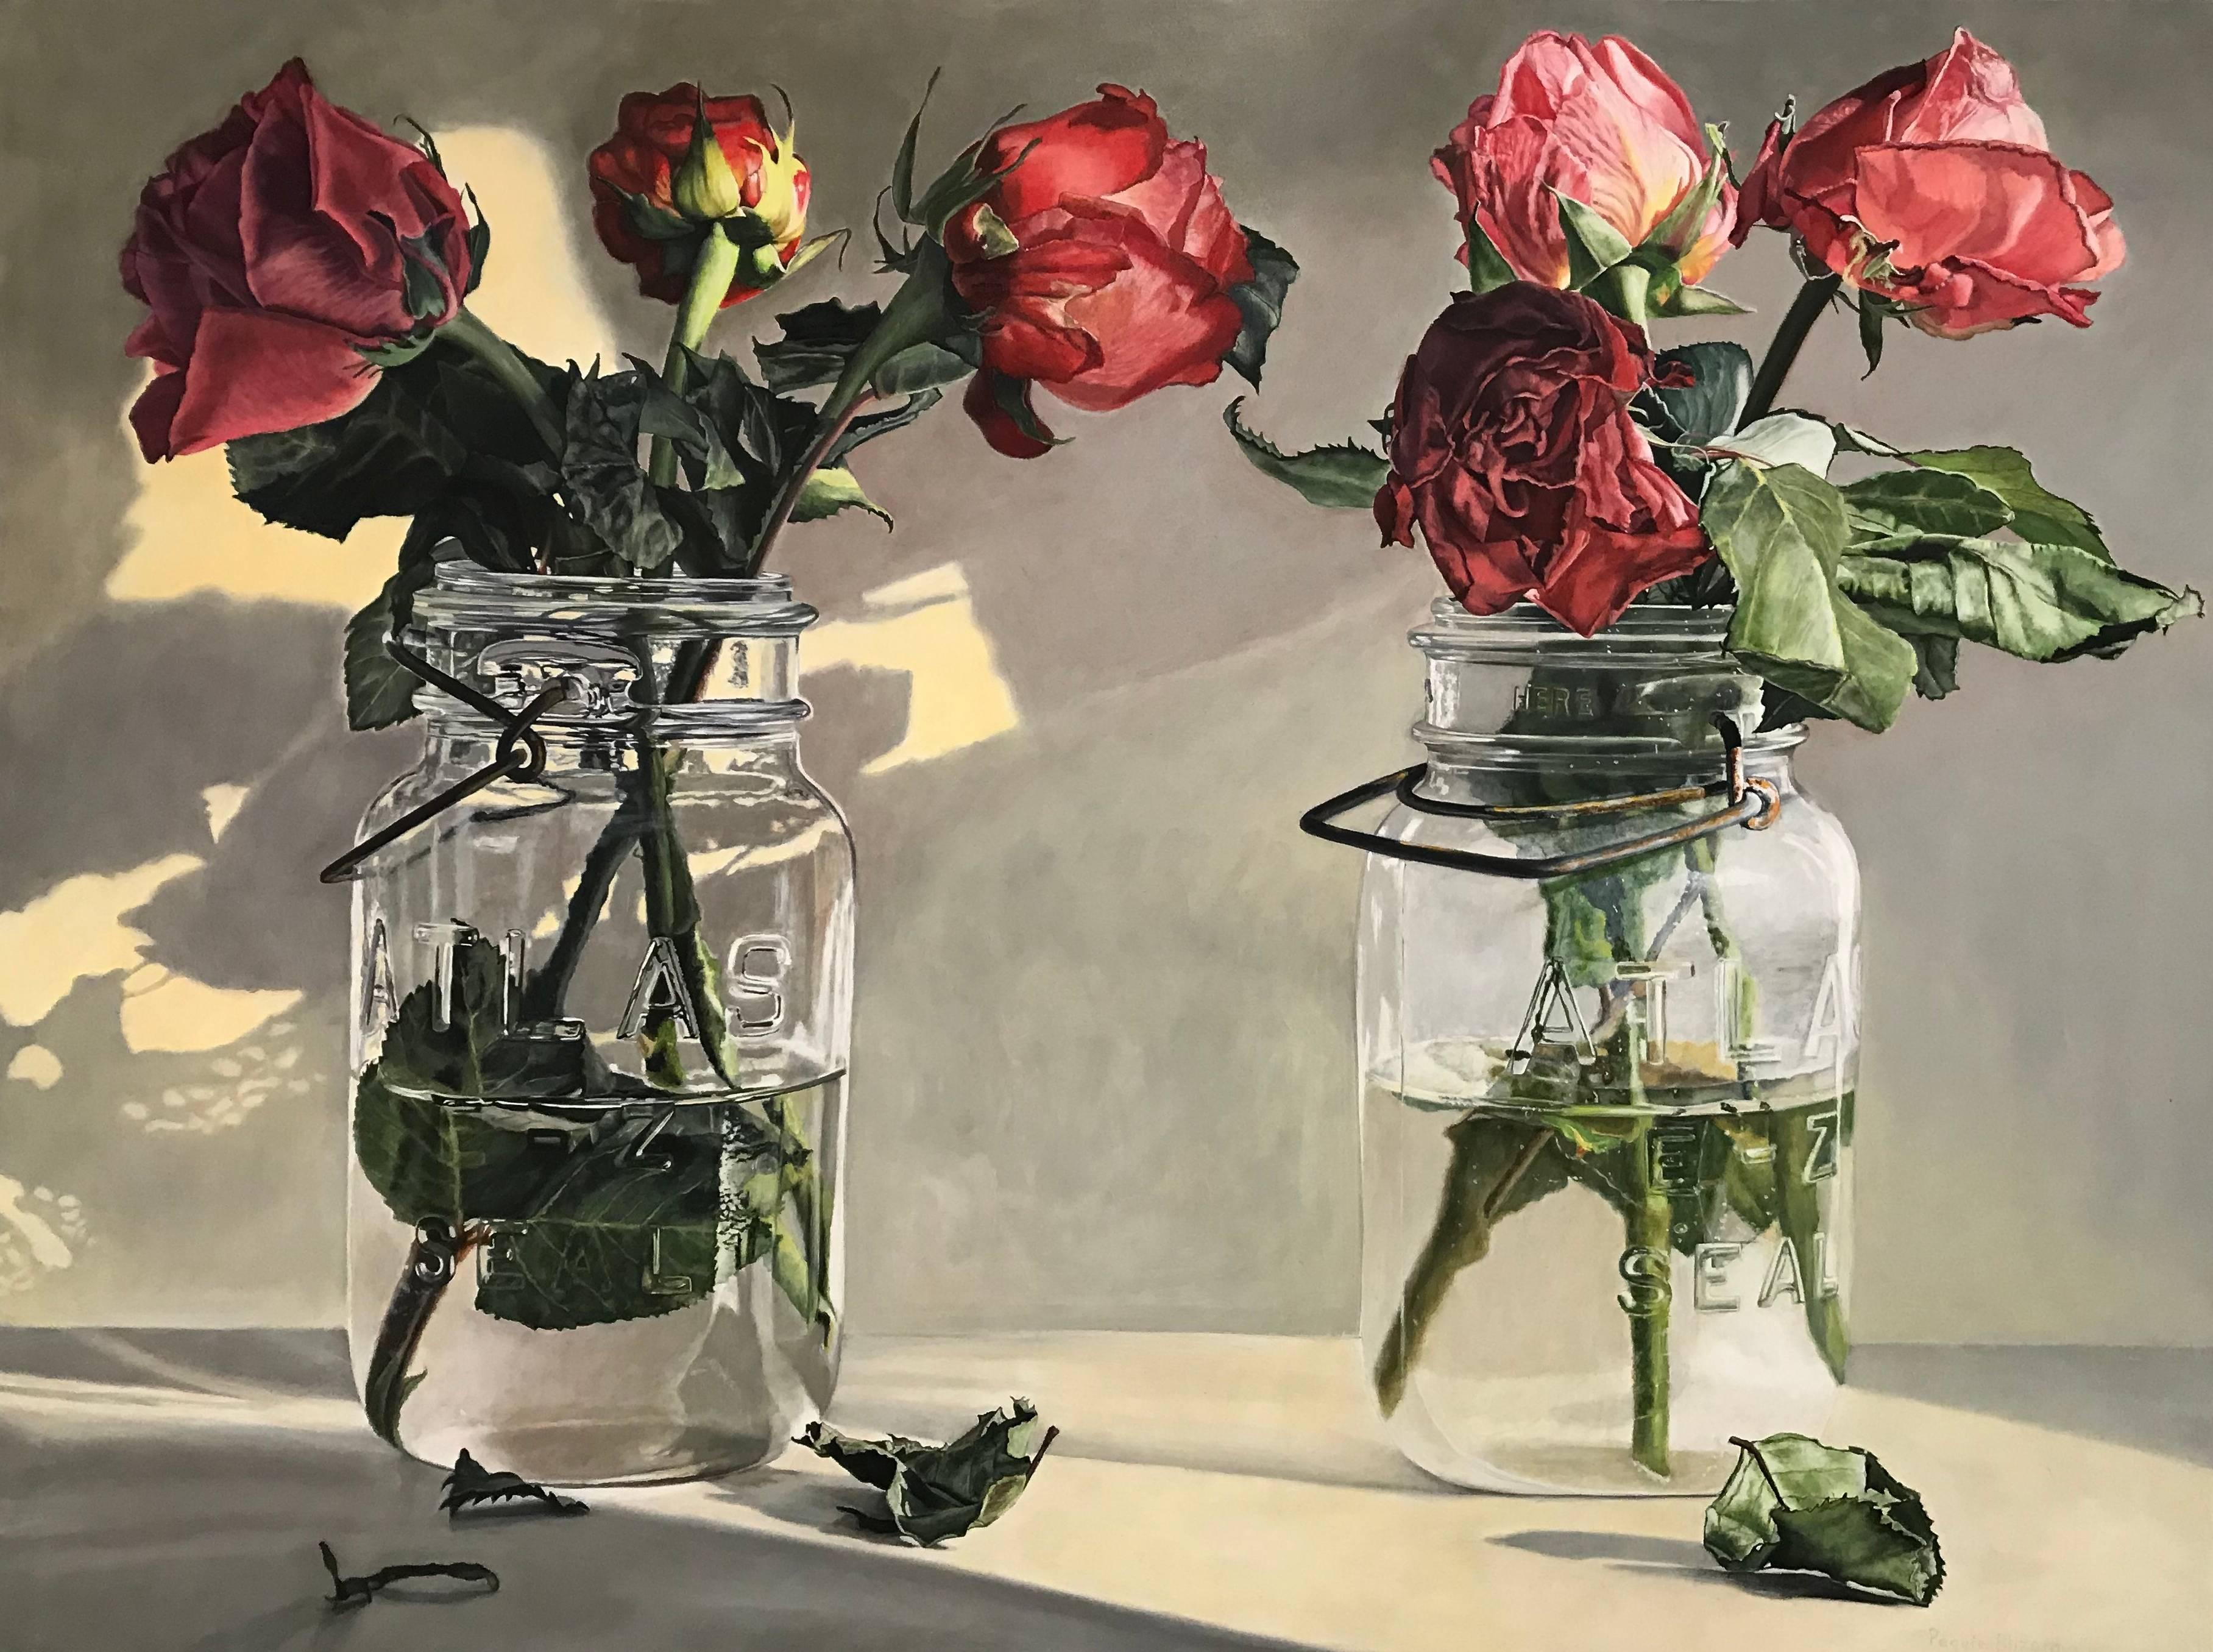 Wilted roses - red